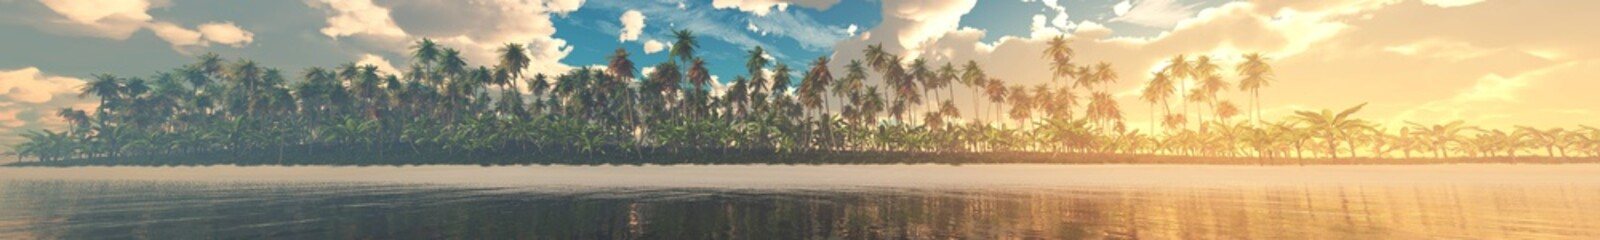 Panorama of the beach with palm trees over the water, beautiful tropical coast with palm trees, 3D rendering